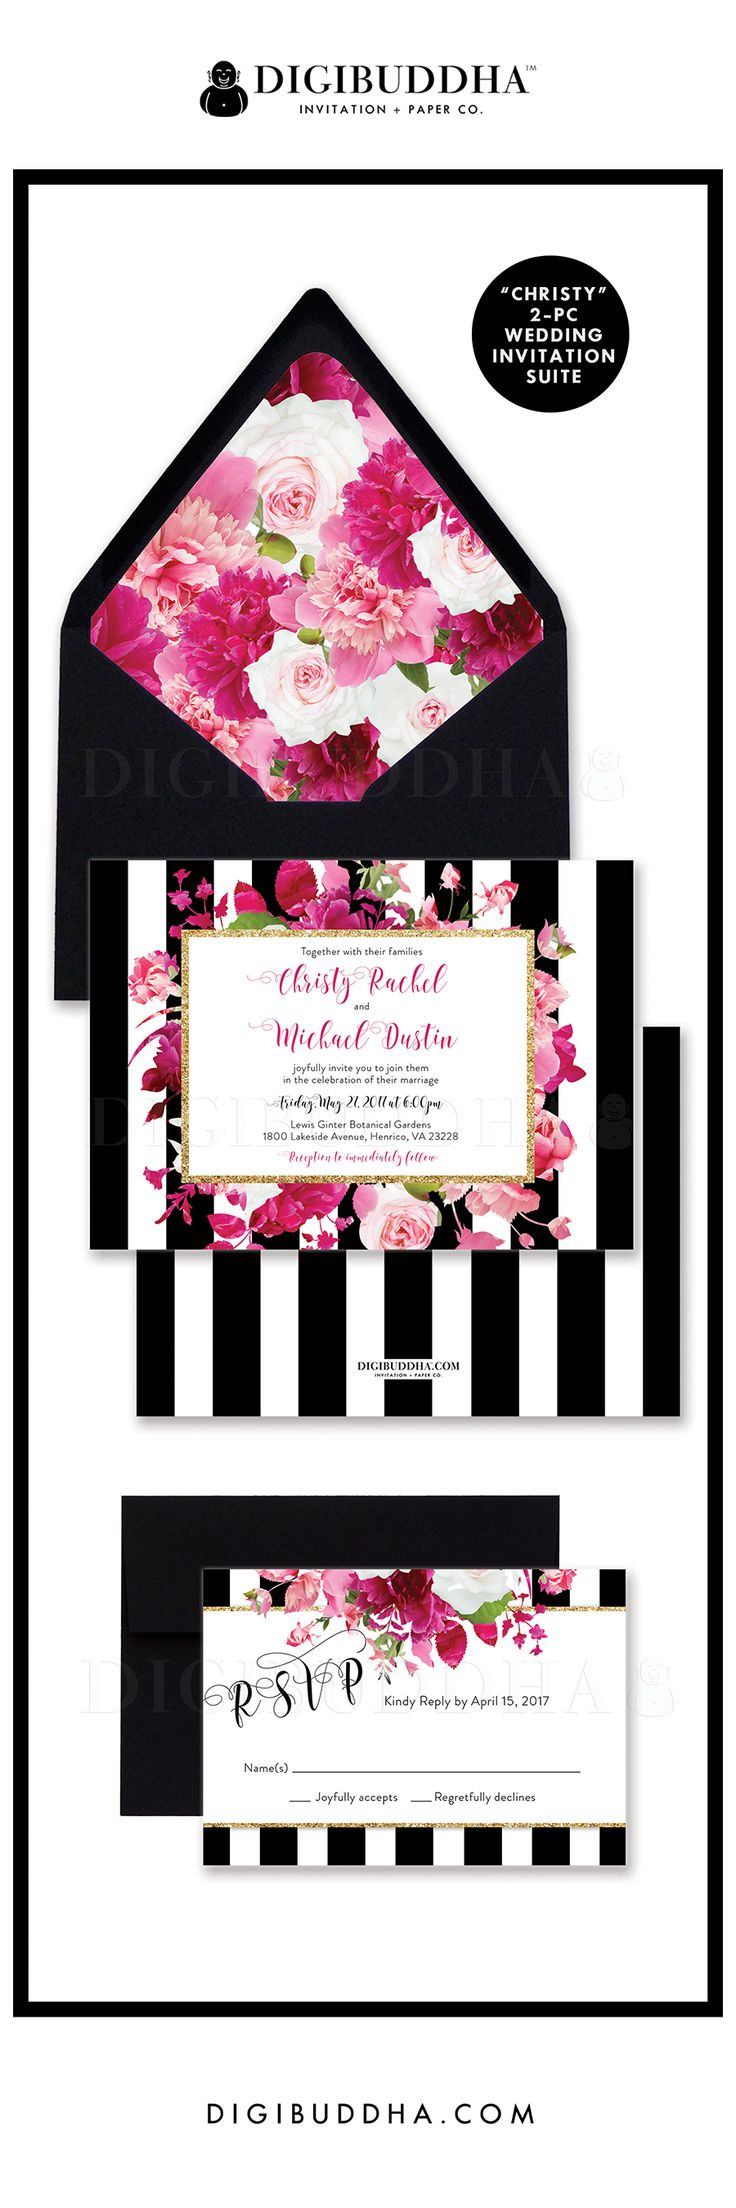 bling invitations bling wedding invitations Modern and elegant black and white striped 2 piece wedding invitations including a invitation